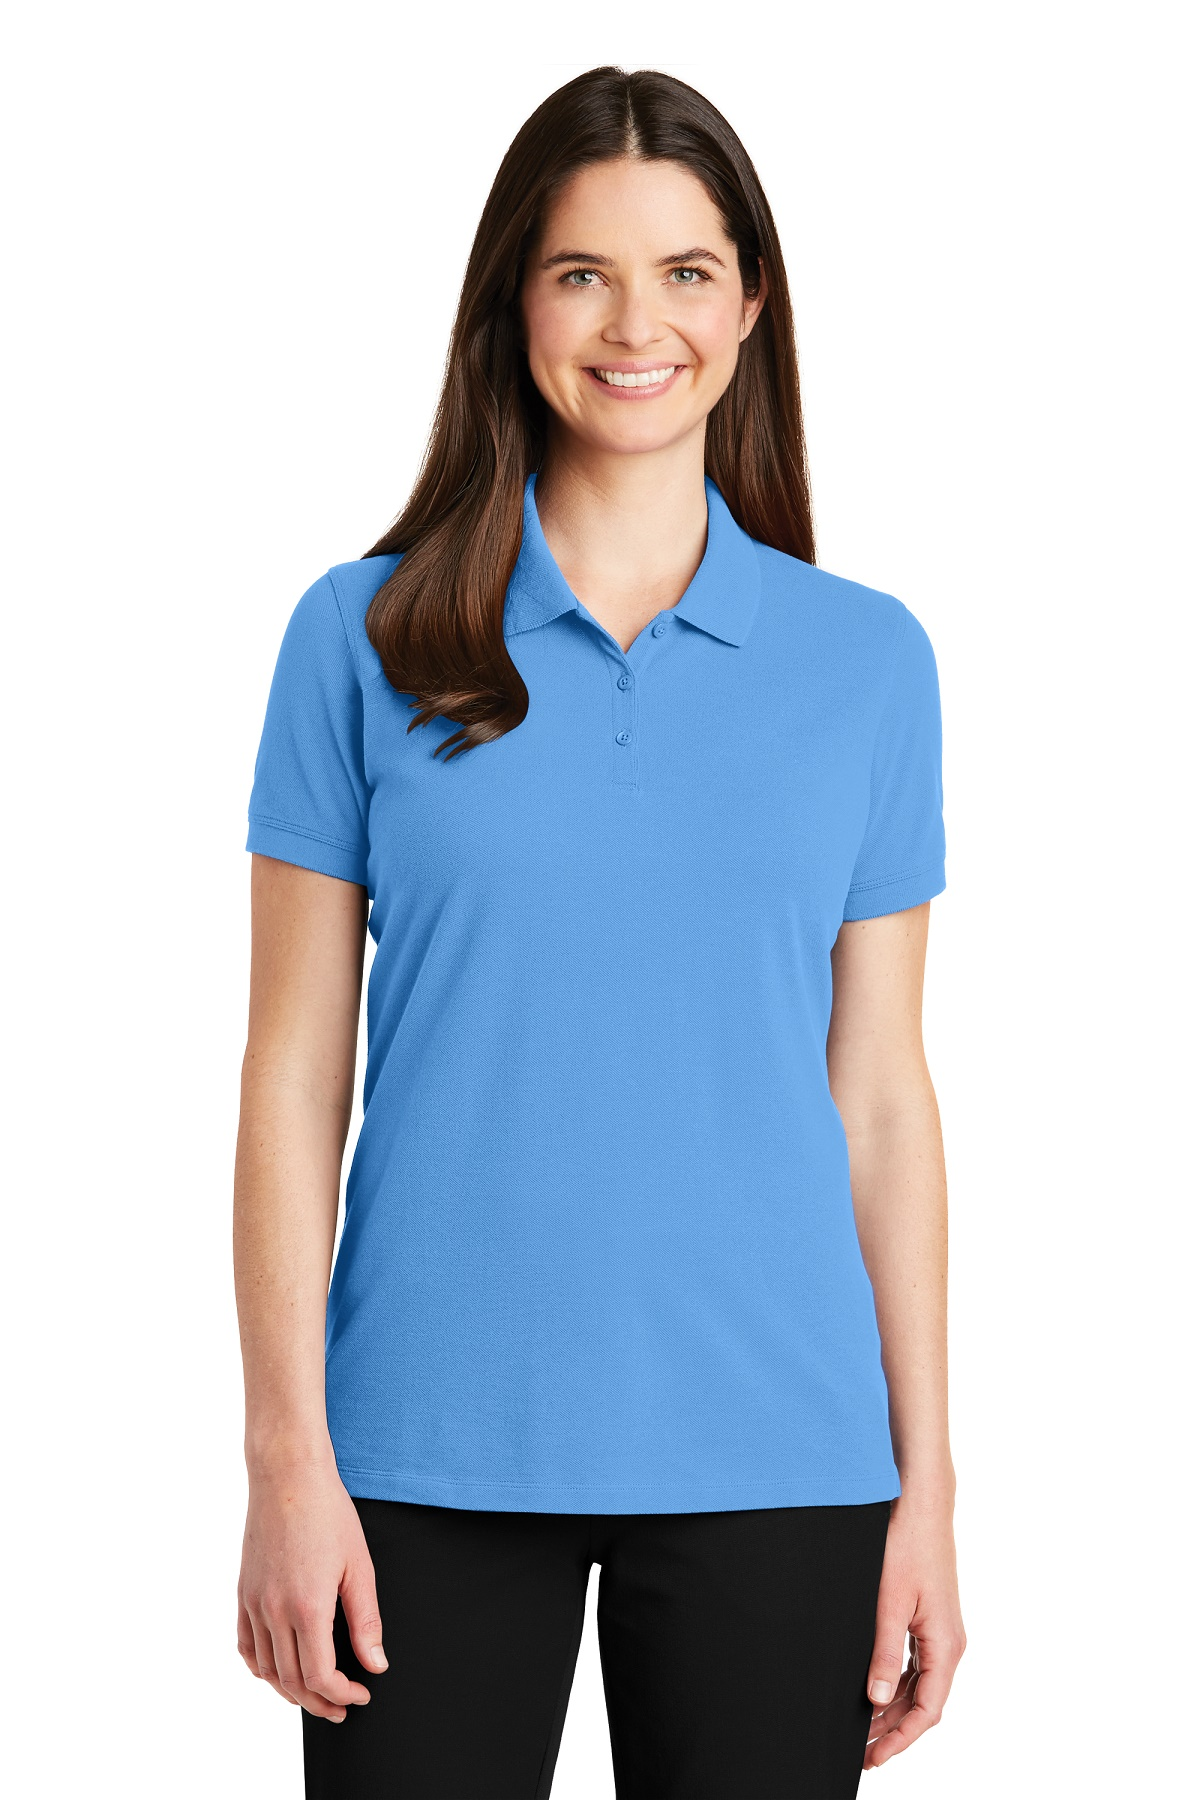 Port Authority Women's EZCotton Pique Polo